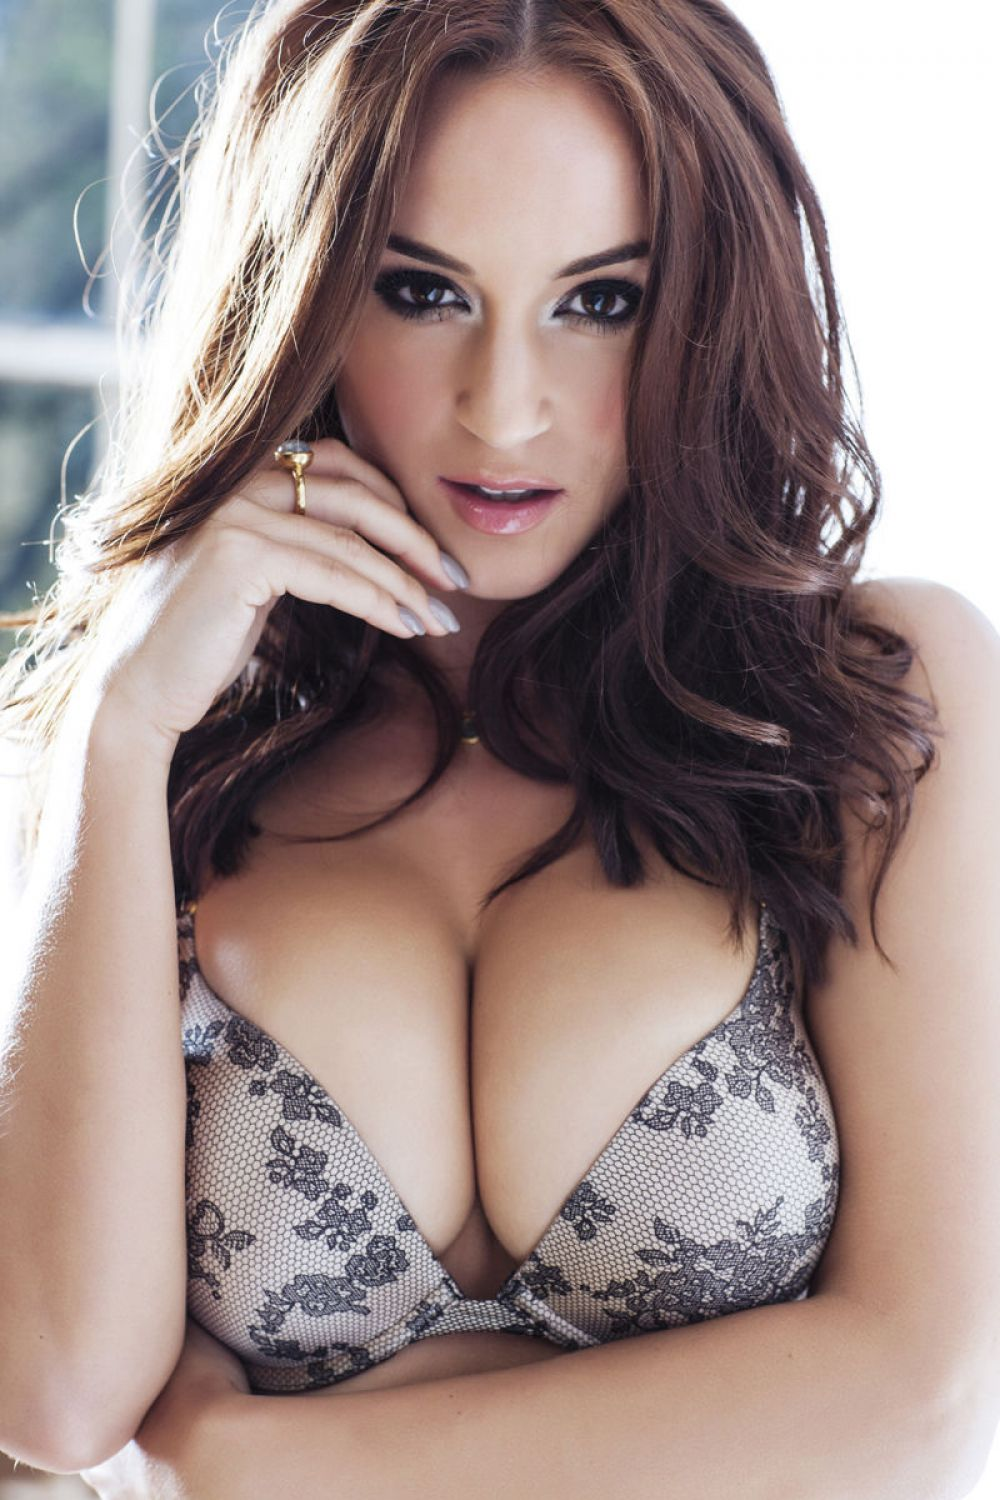 Rosie Jones nudes (15 photos) Sideboobs, Facebook, braless